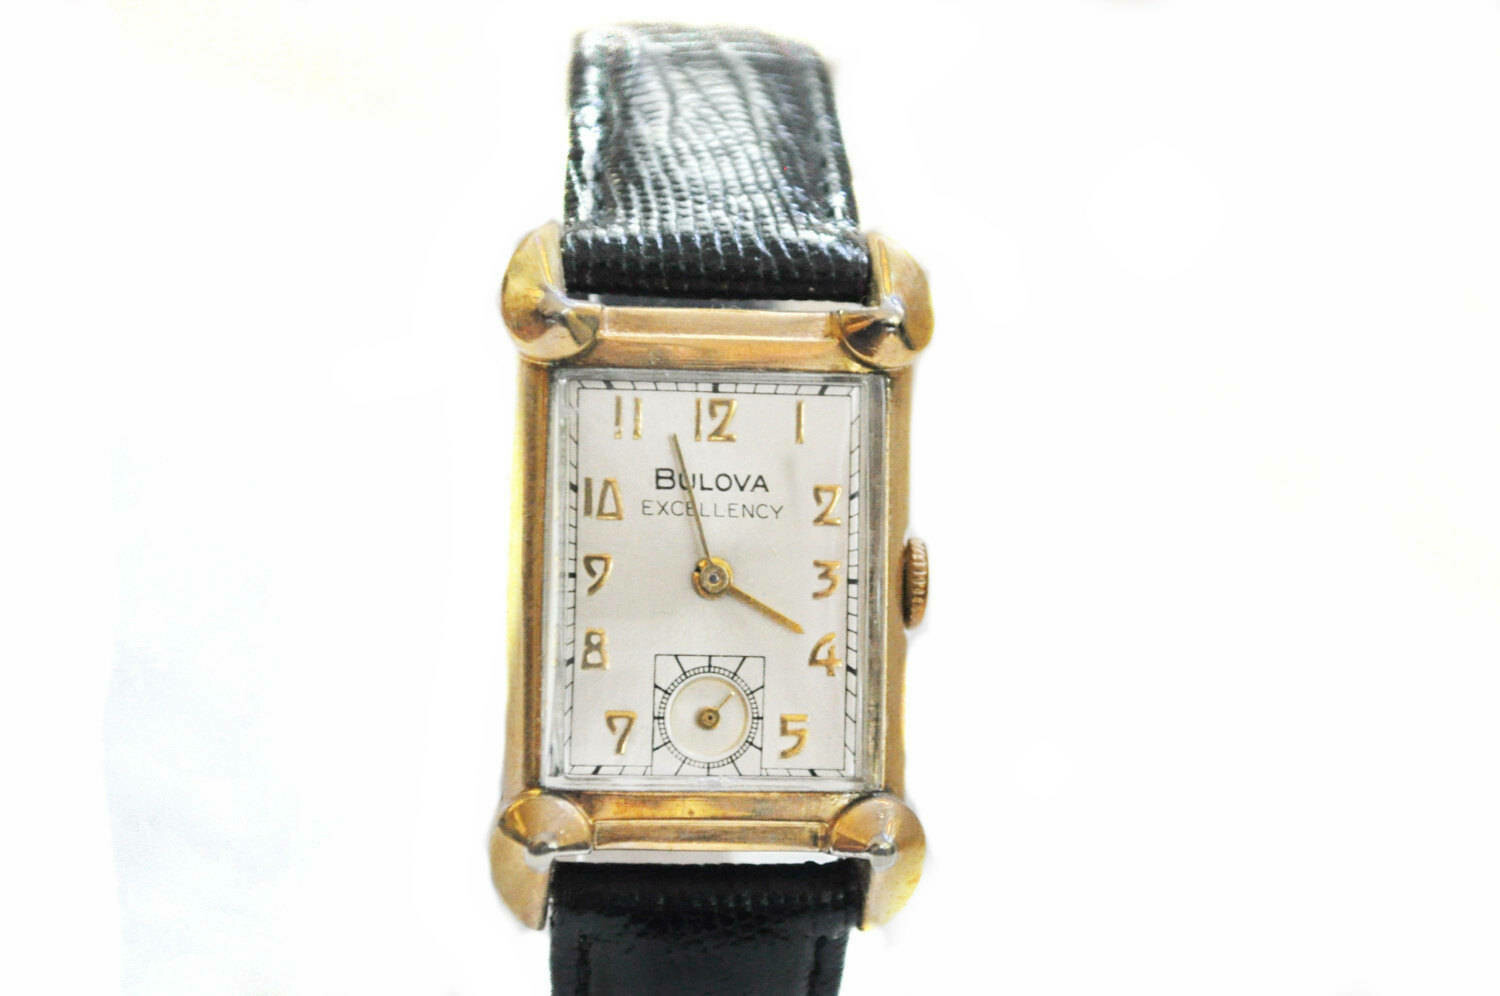 1940s Bulova His Excellency Bankers Horned Lugs Watch